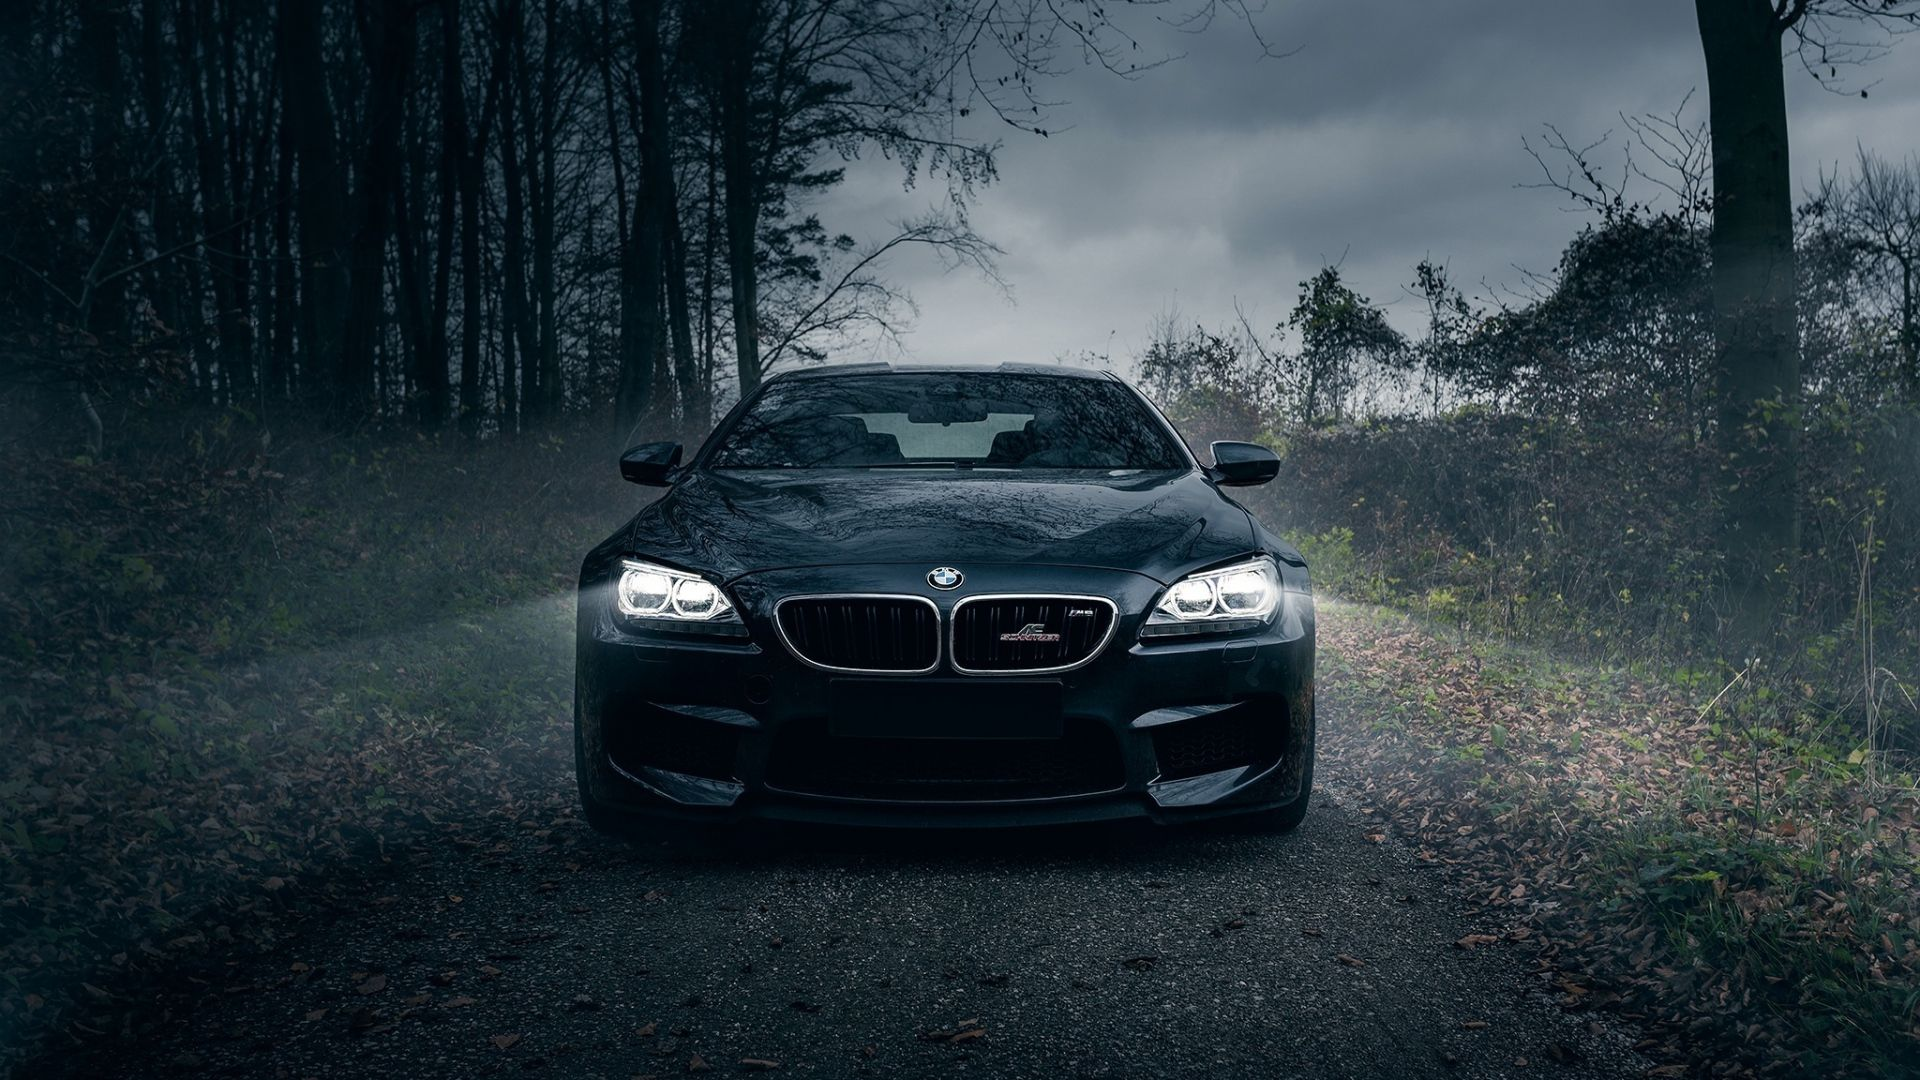 Bmw M6 Dark Bmw Wallpapers Pinterest Bmw Cars And Bmw M6